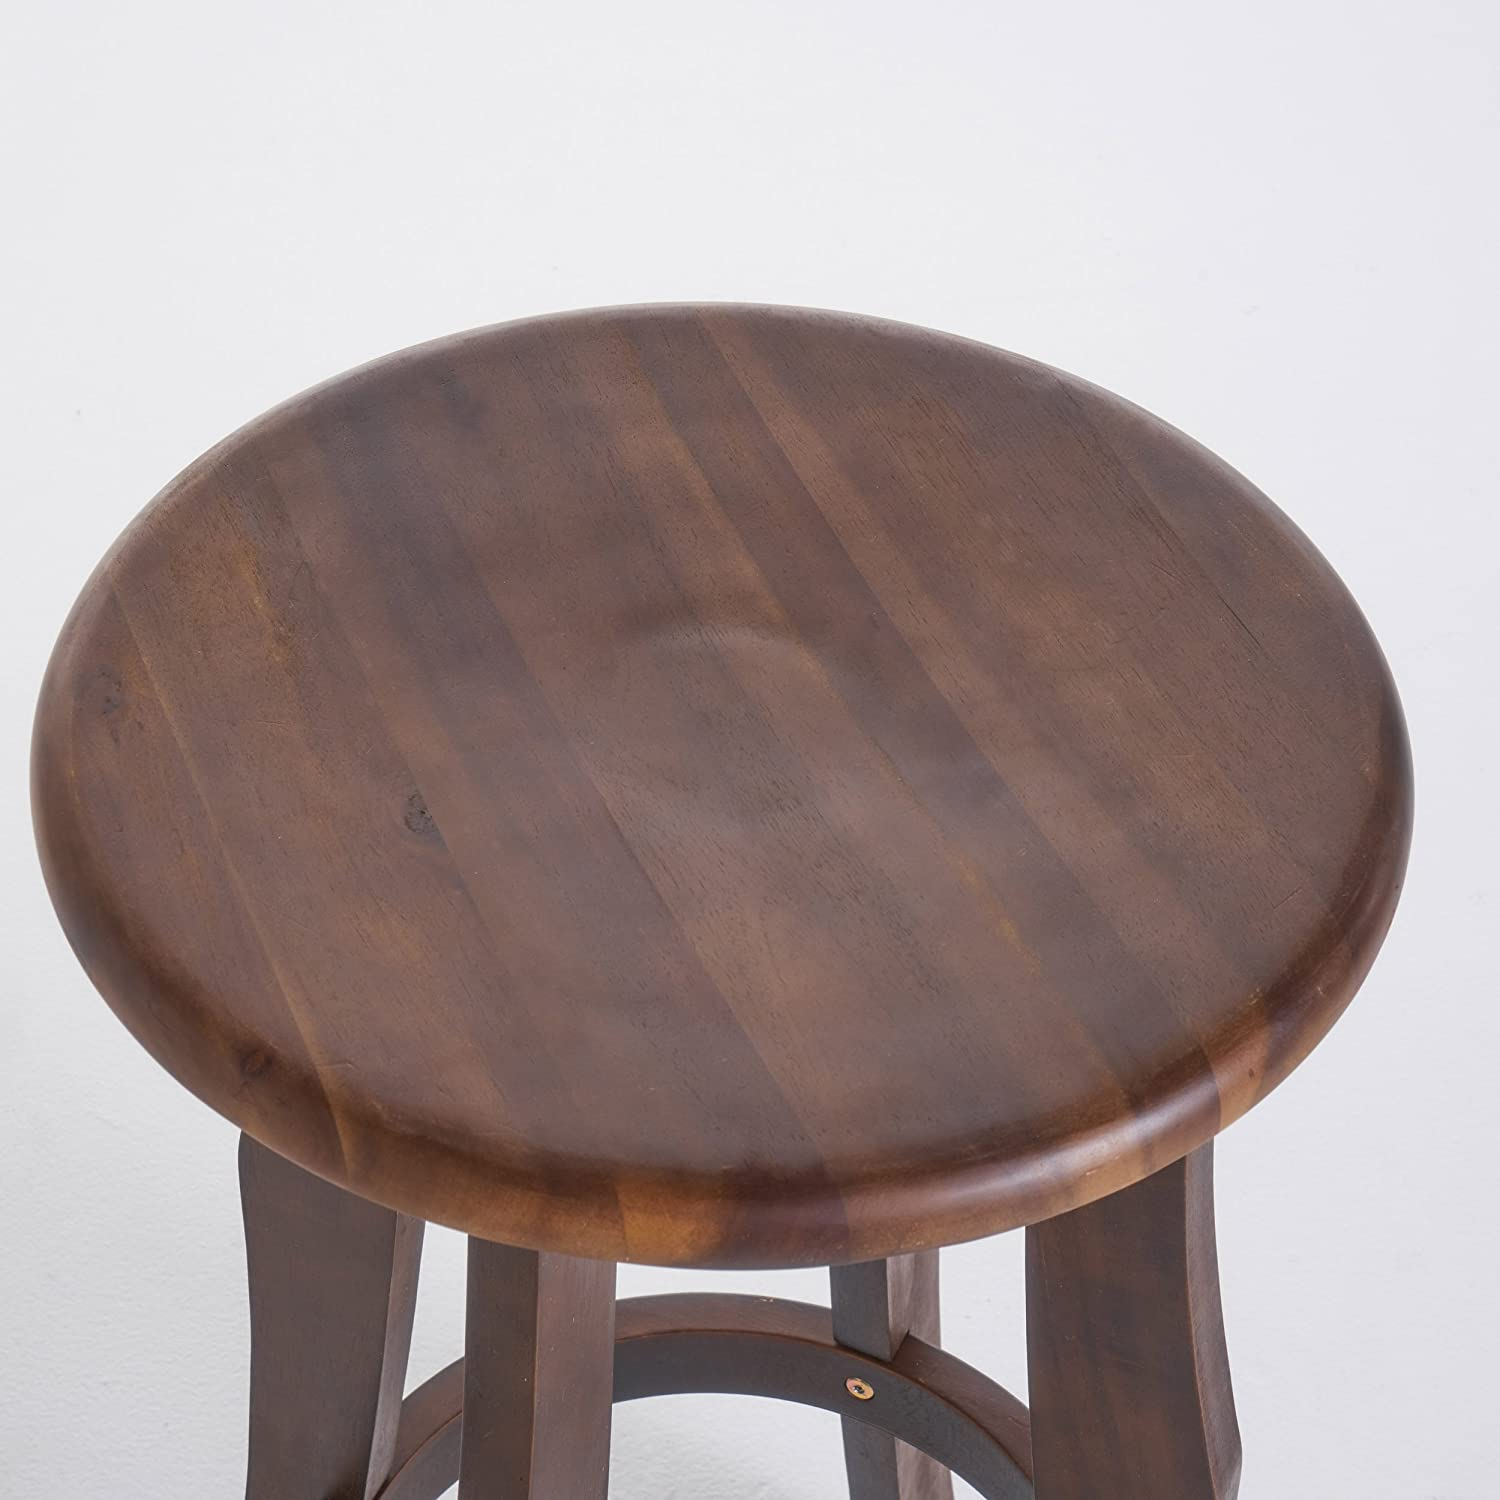 Great Deal Furniture 303980 Ruth Indoor Dark Brown Finished Acacia Wood Barstools , Set of 2